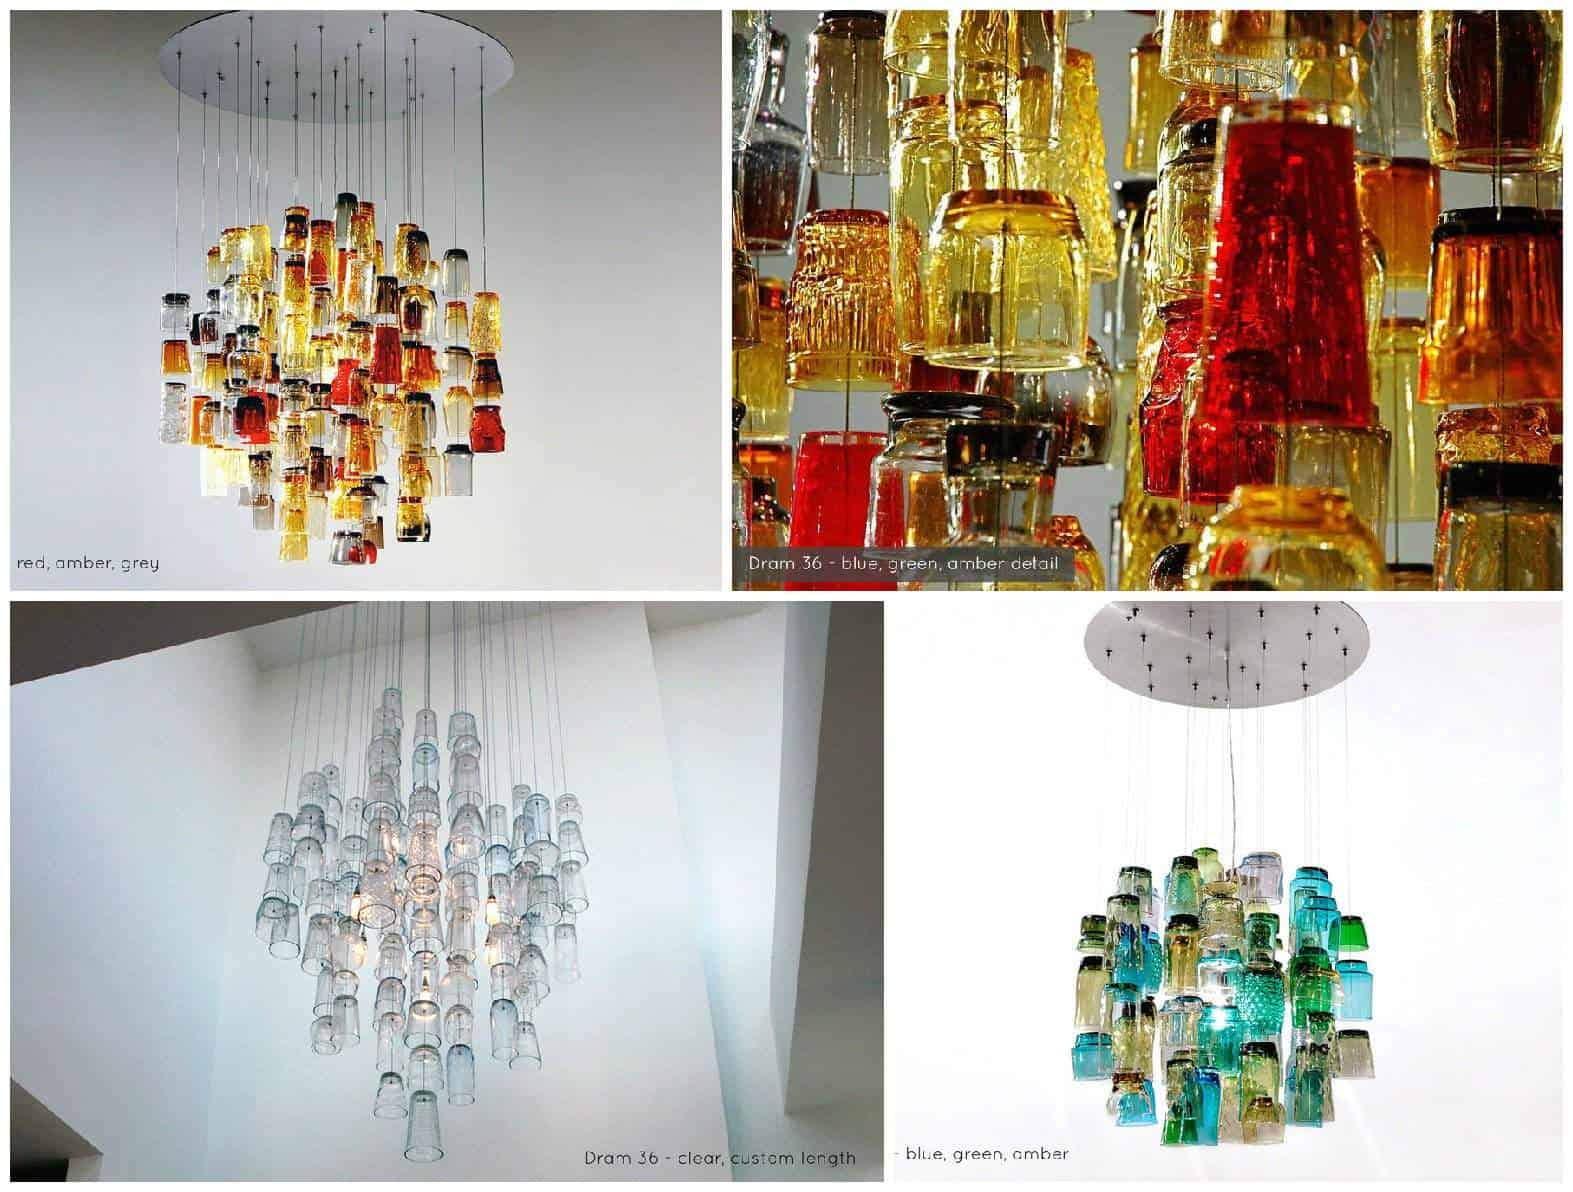 Dram glasses chandeliers recyclart aloadofball